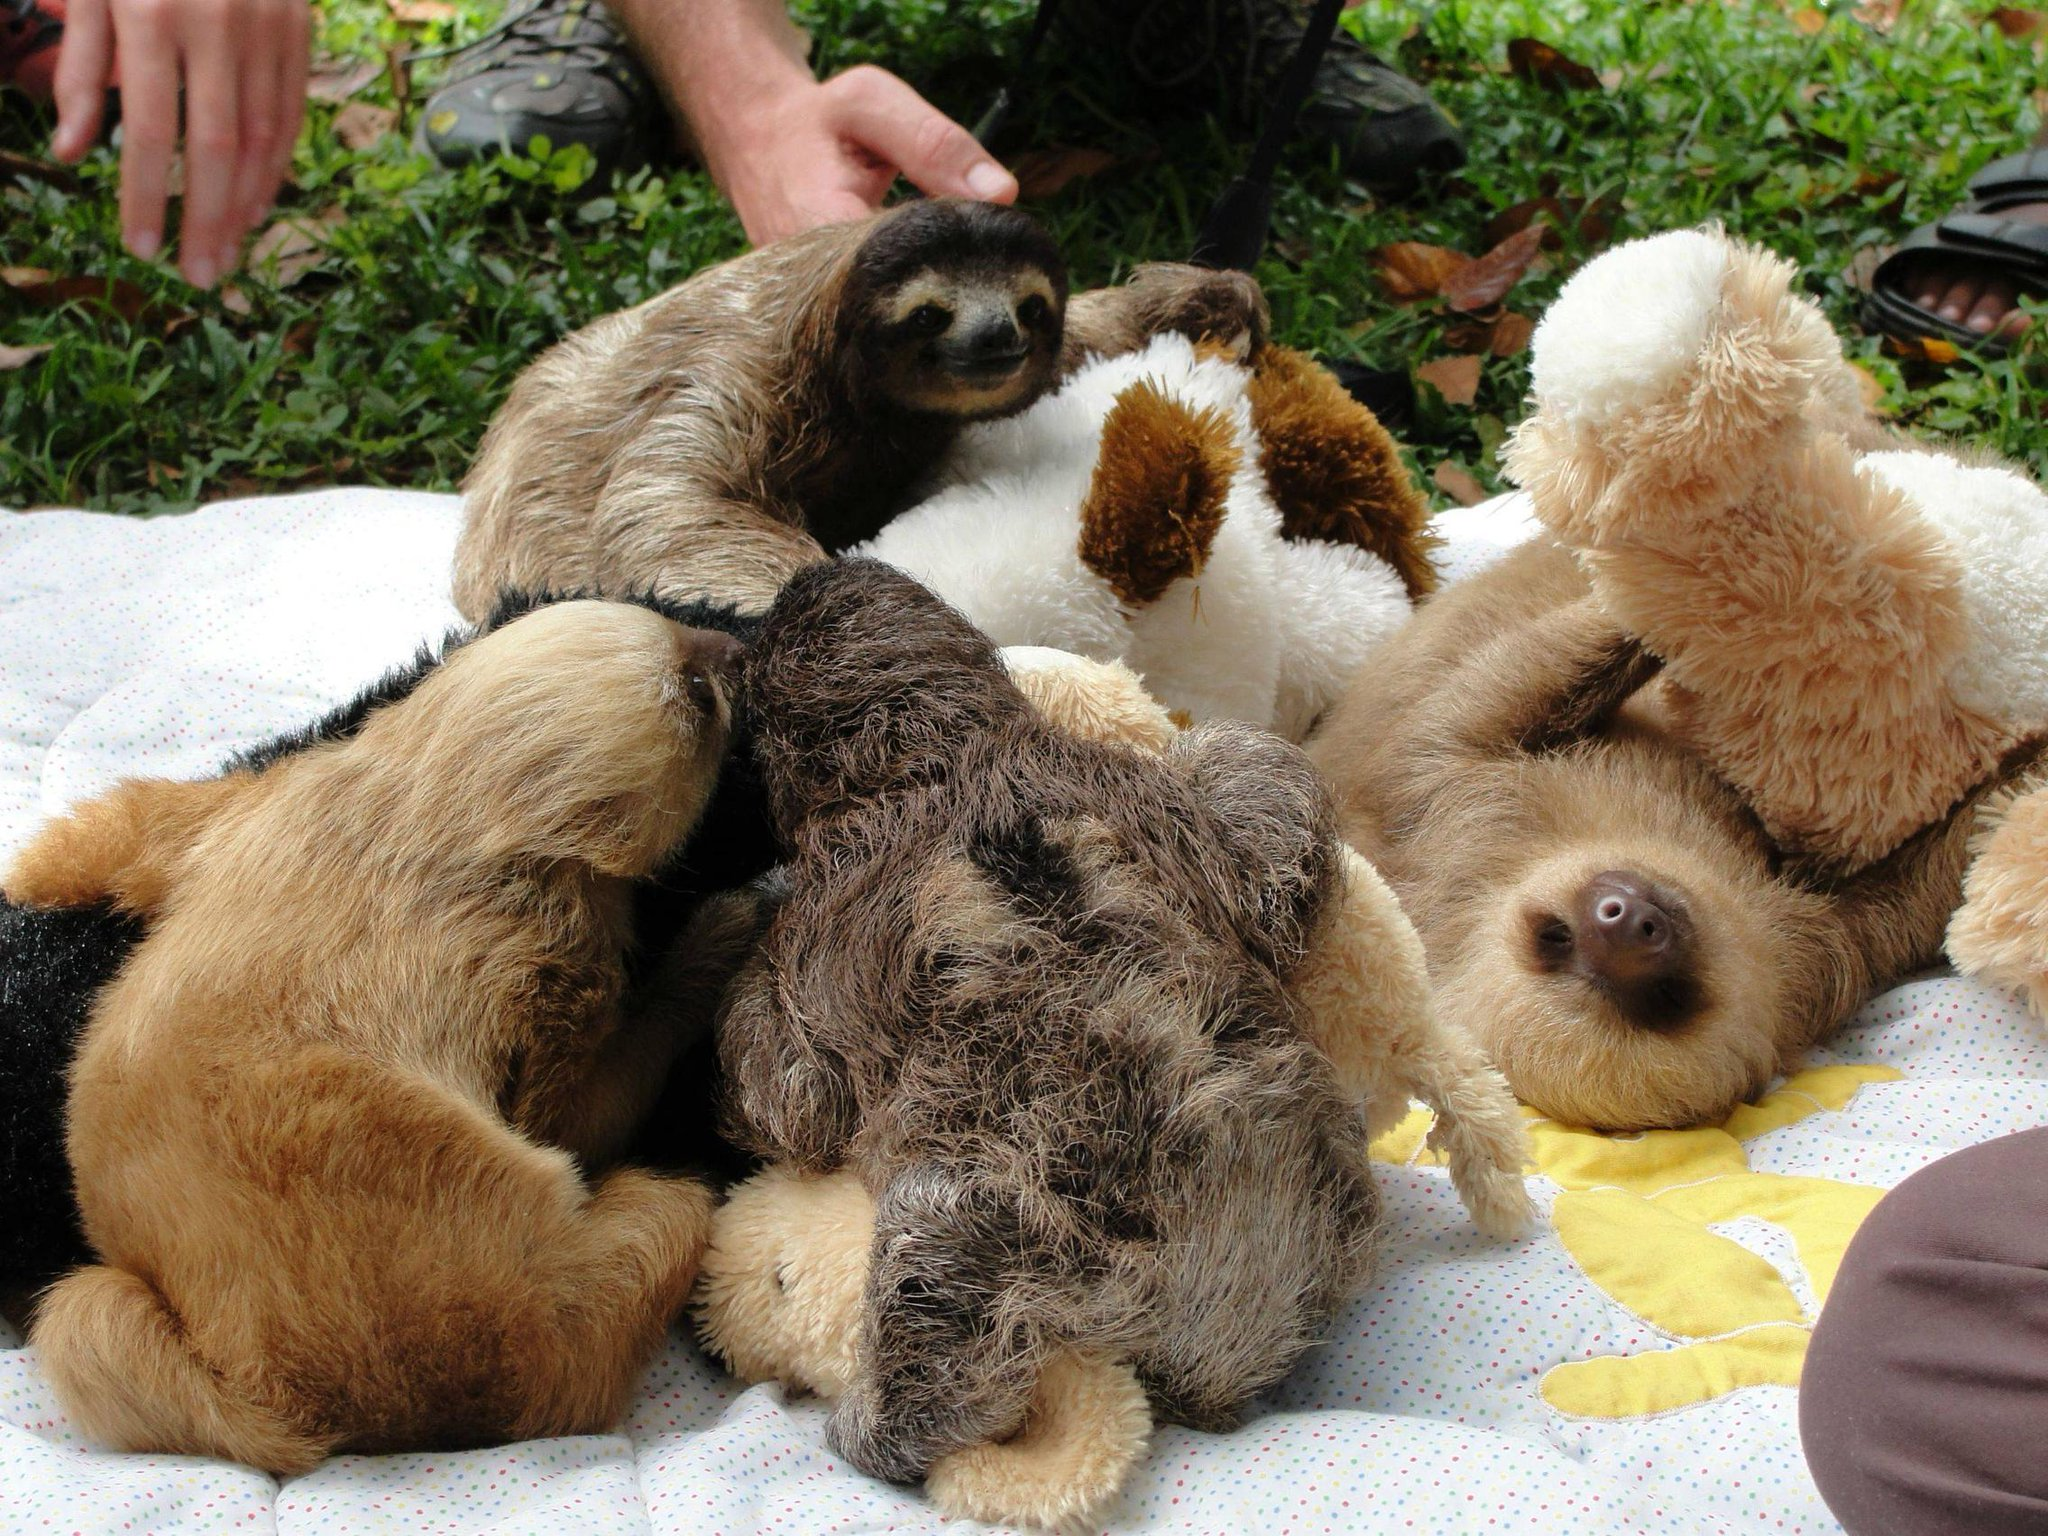 A pile of baby sloths cuddling with teddy bears. http://t.co/sgRXWAZk9t